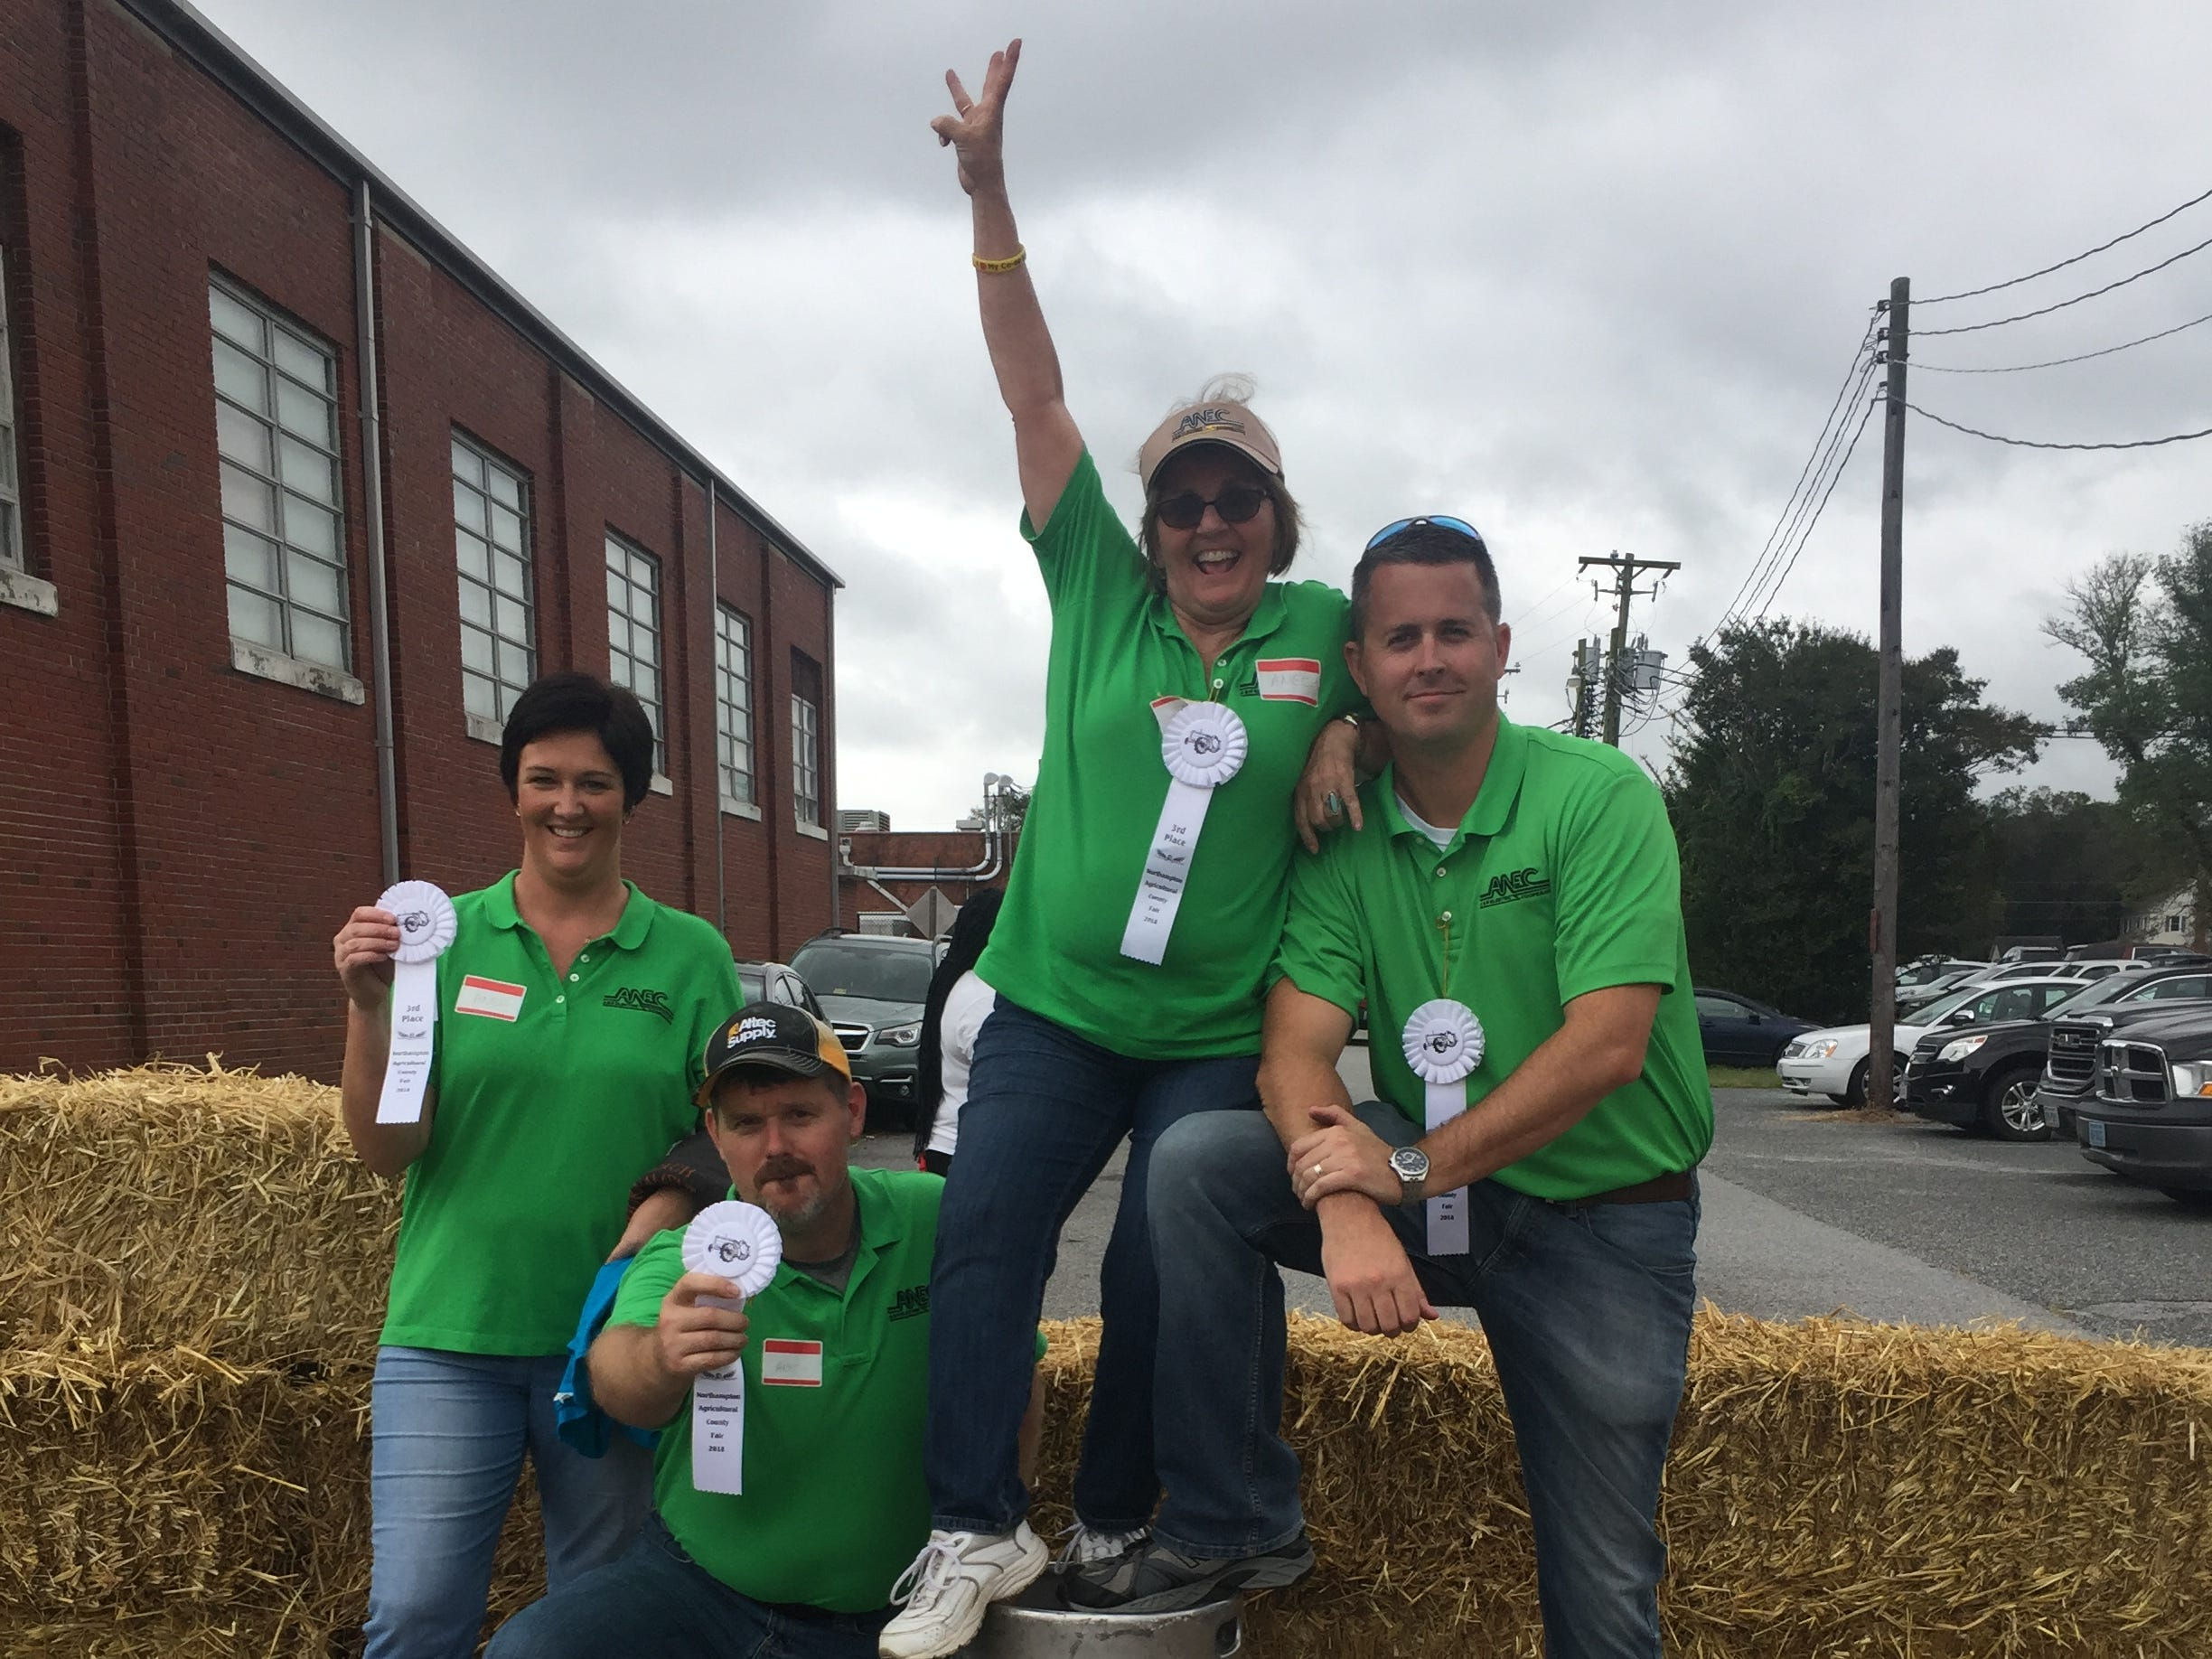 Northampton Agricultural County Fair Keg Roll, 2nd Place Winners - ANEC